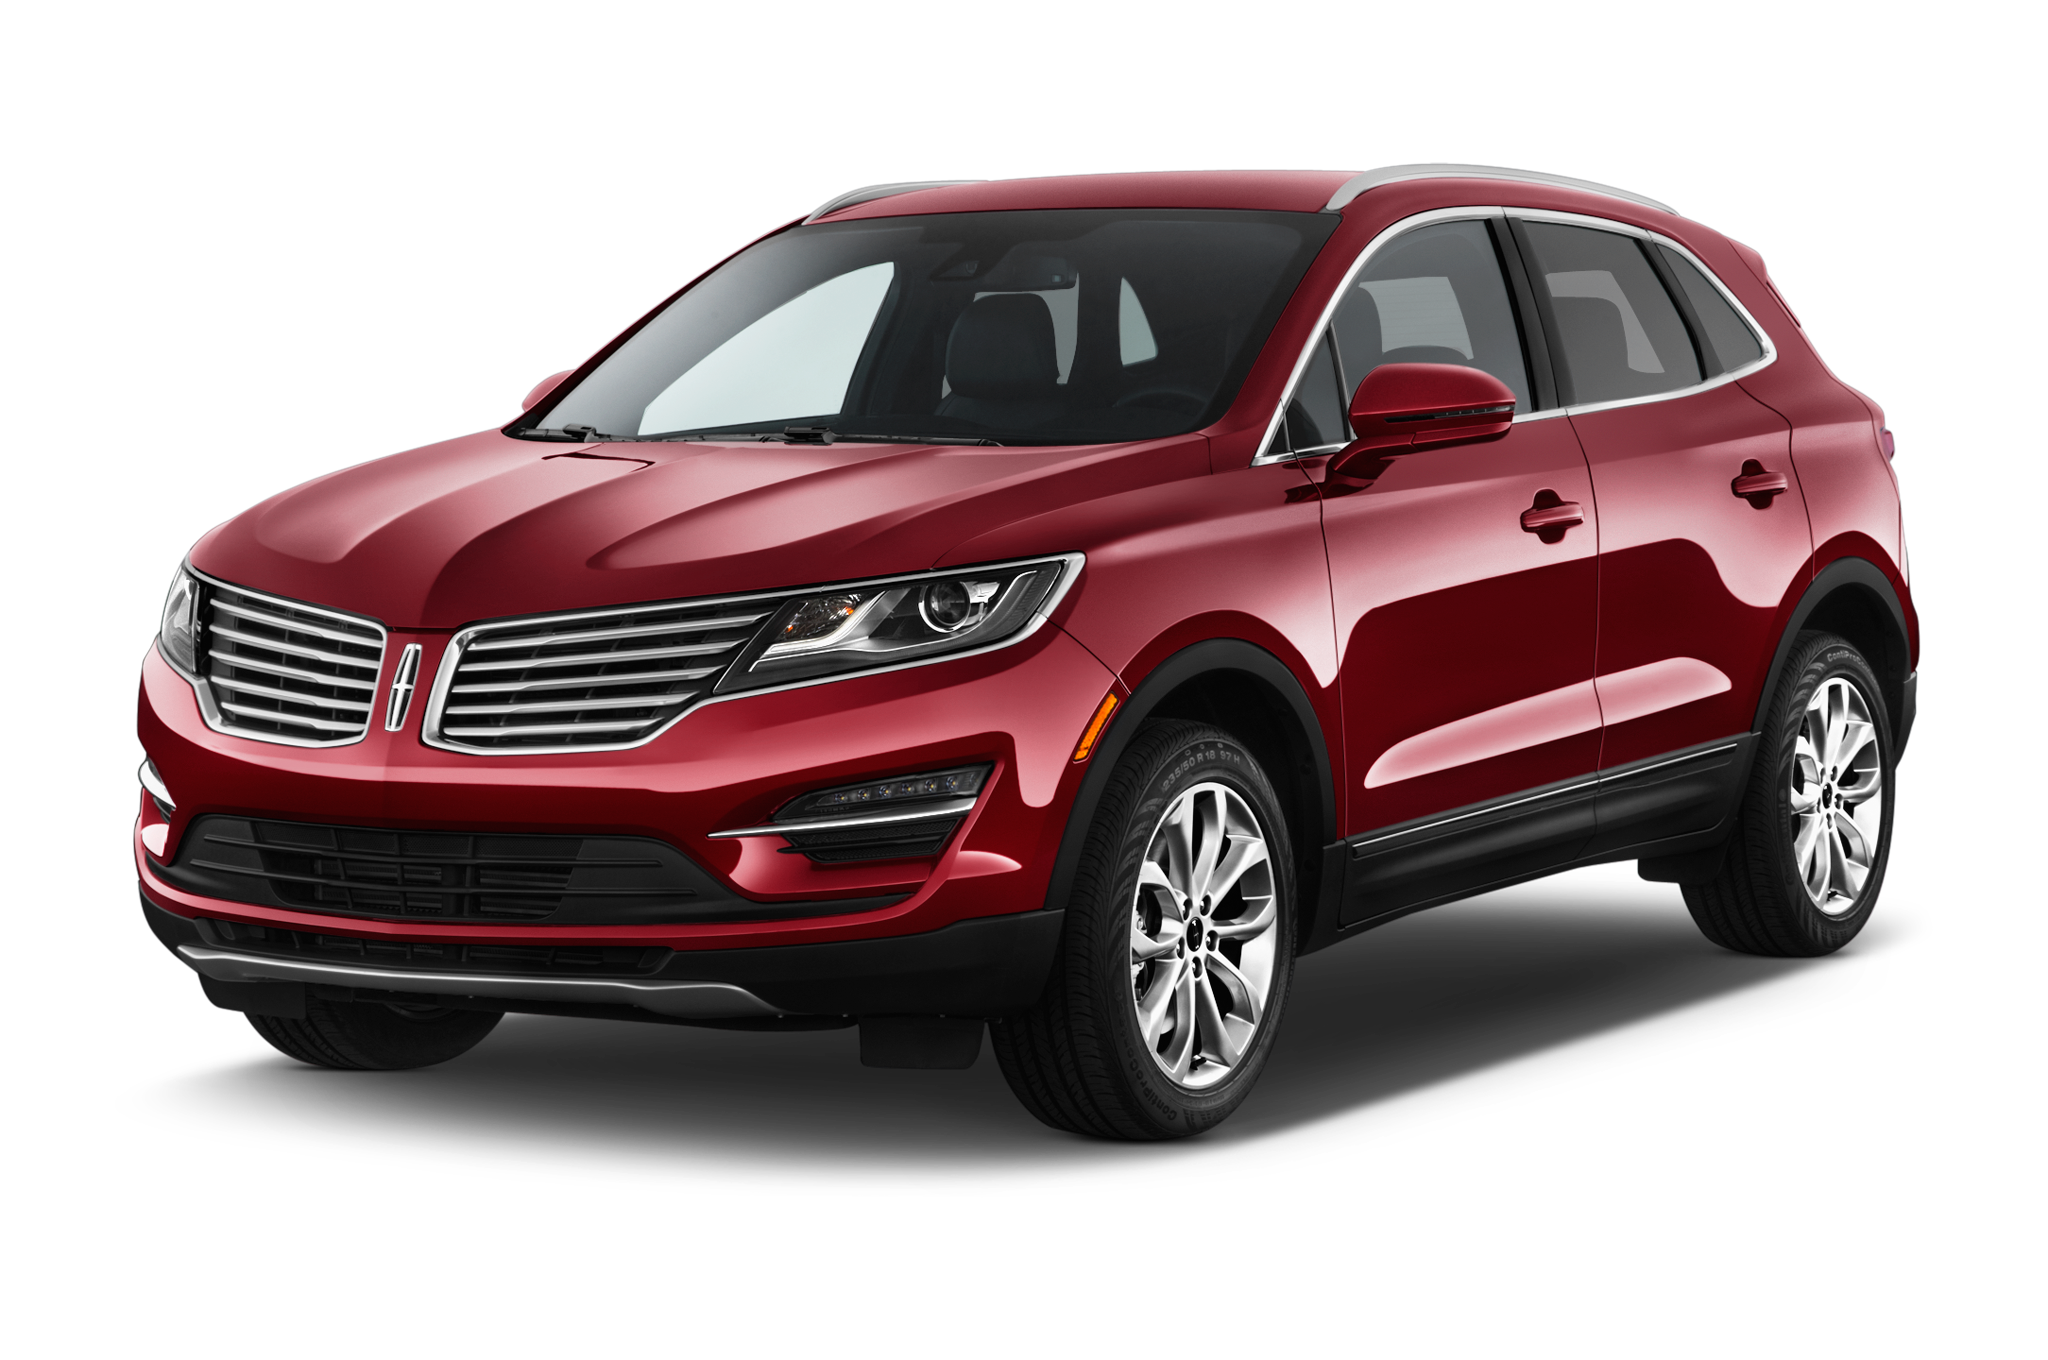 2017 lincoln mkc adds more standard features automobile magazine. Black Bedroom Furniture Sets. Home Design Ideas